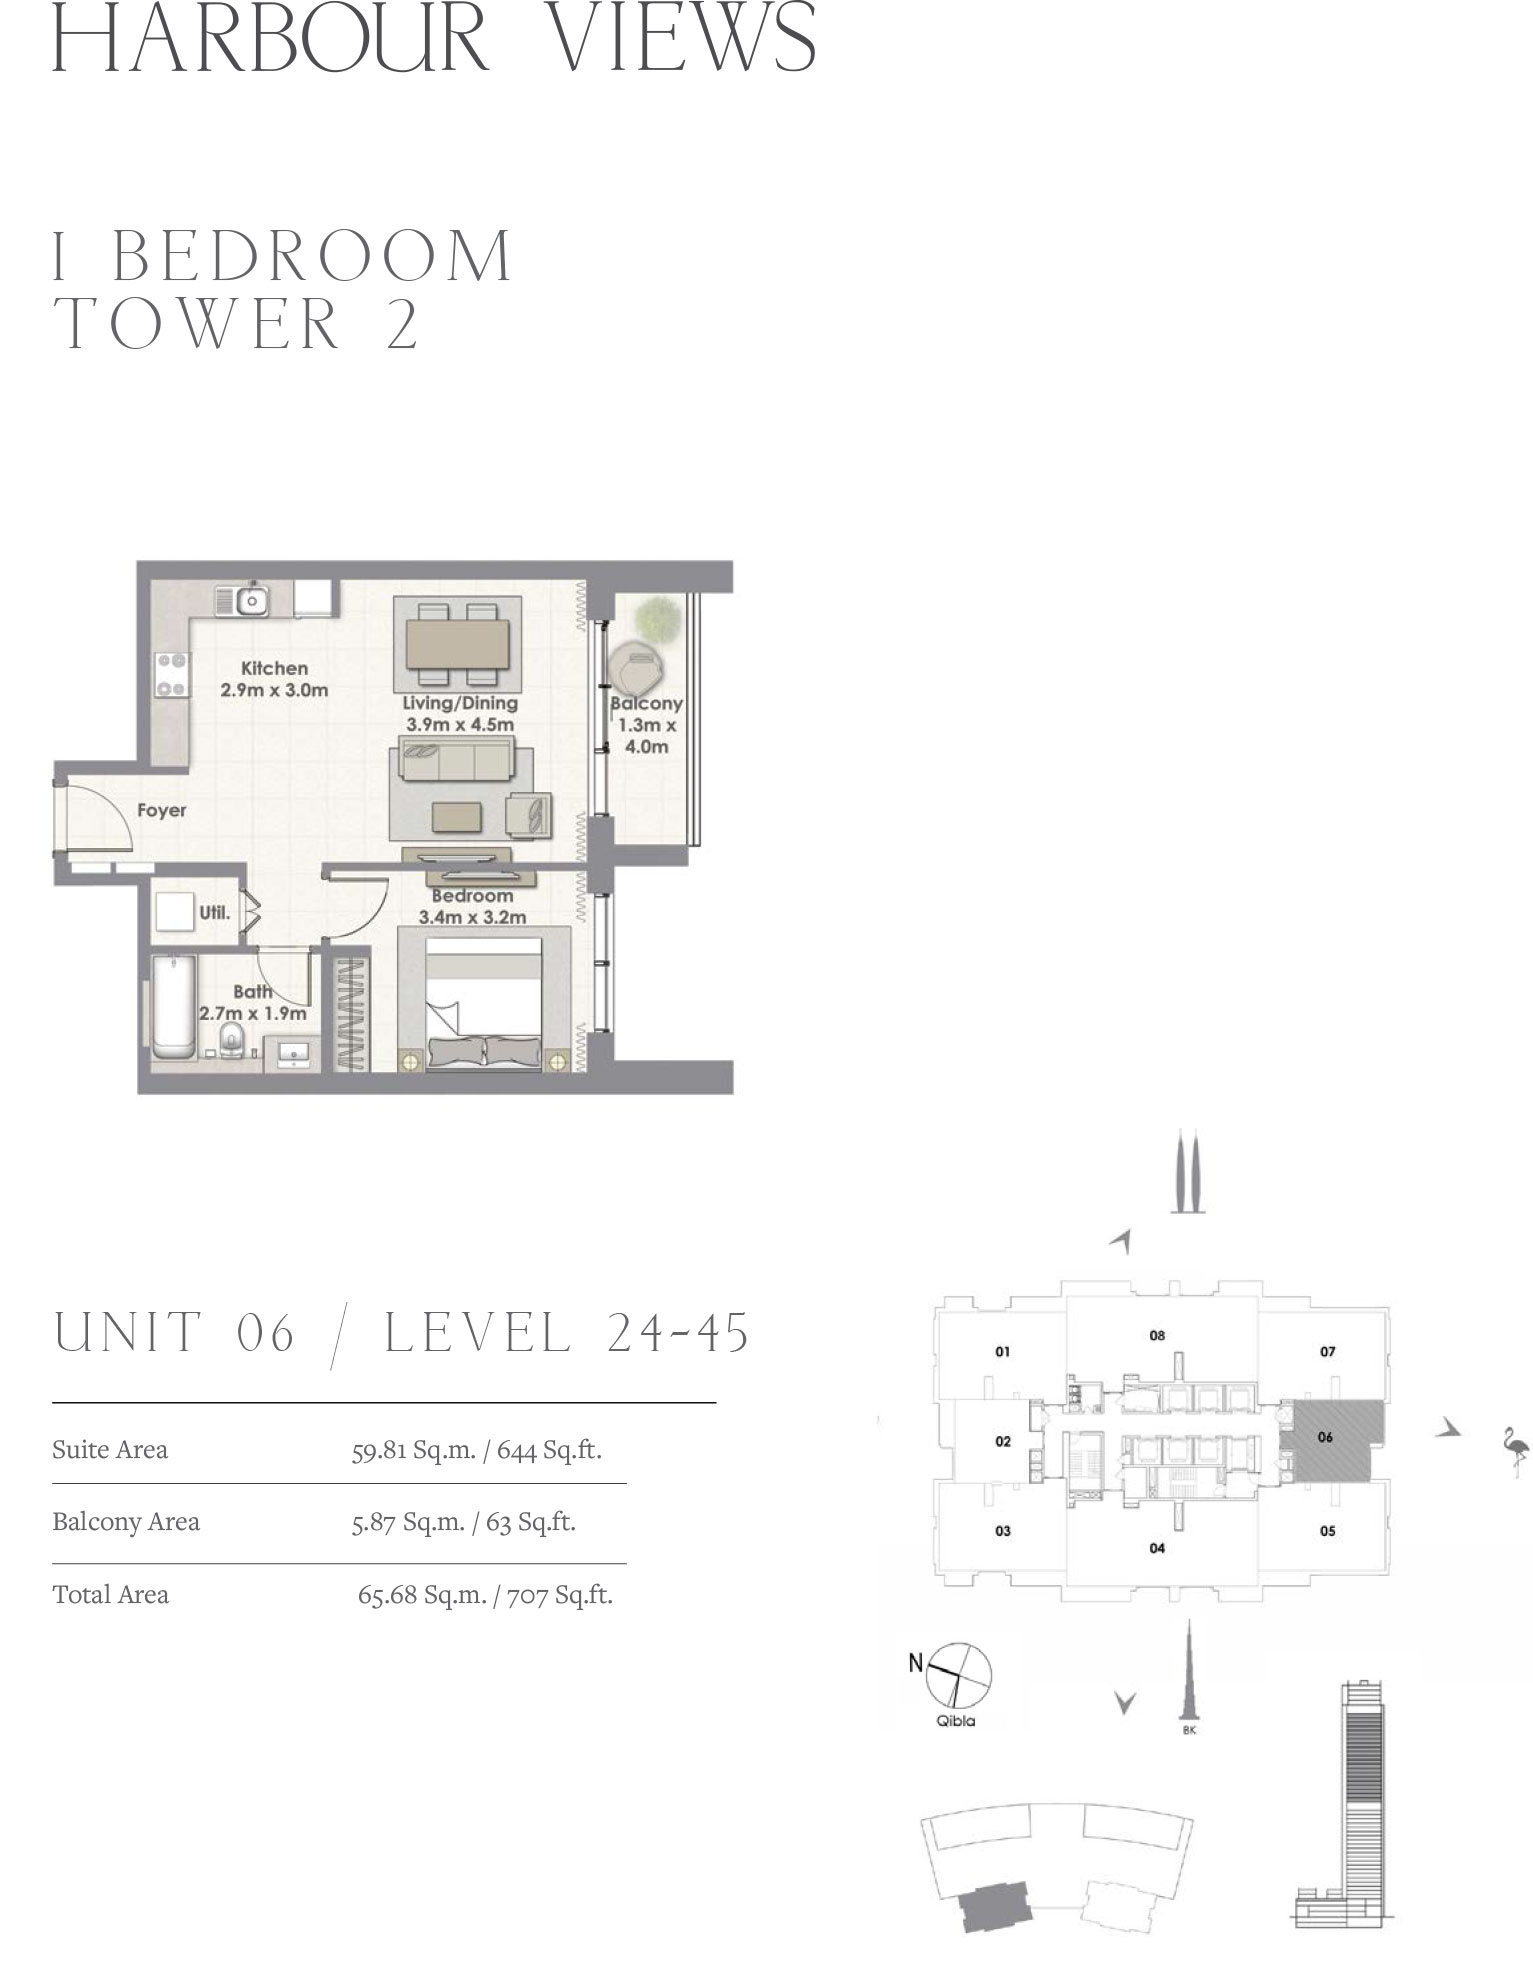 1 Bedroom Tower 2, Unit 06/Level 24-45